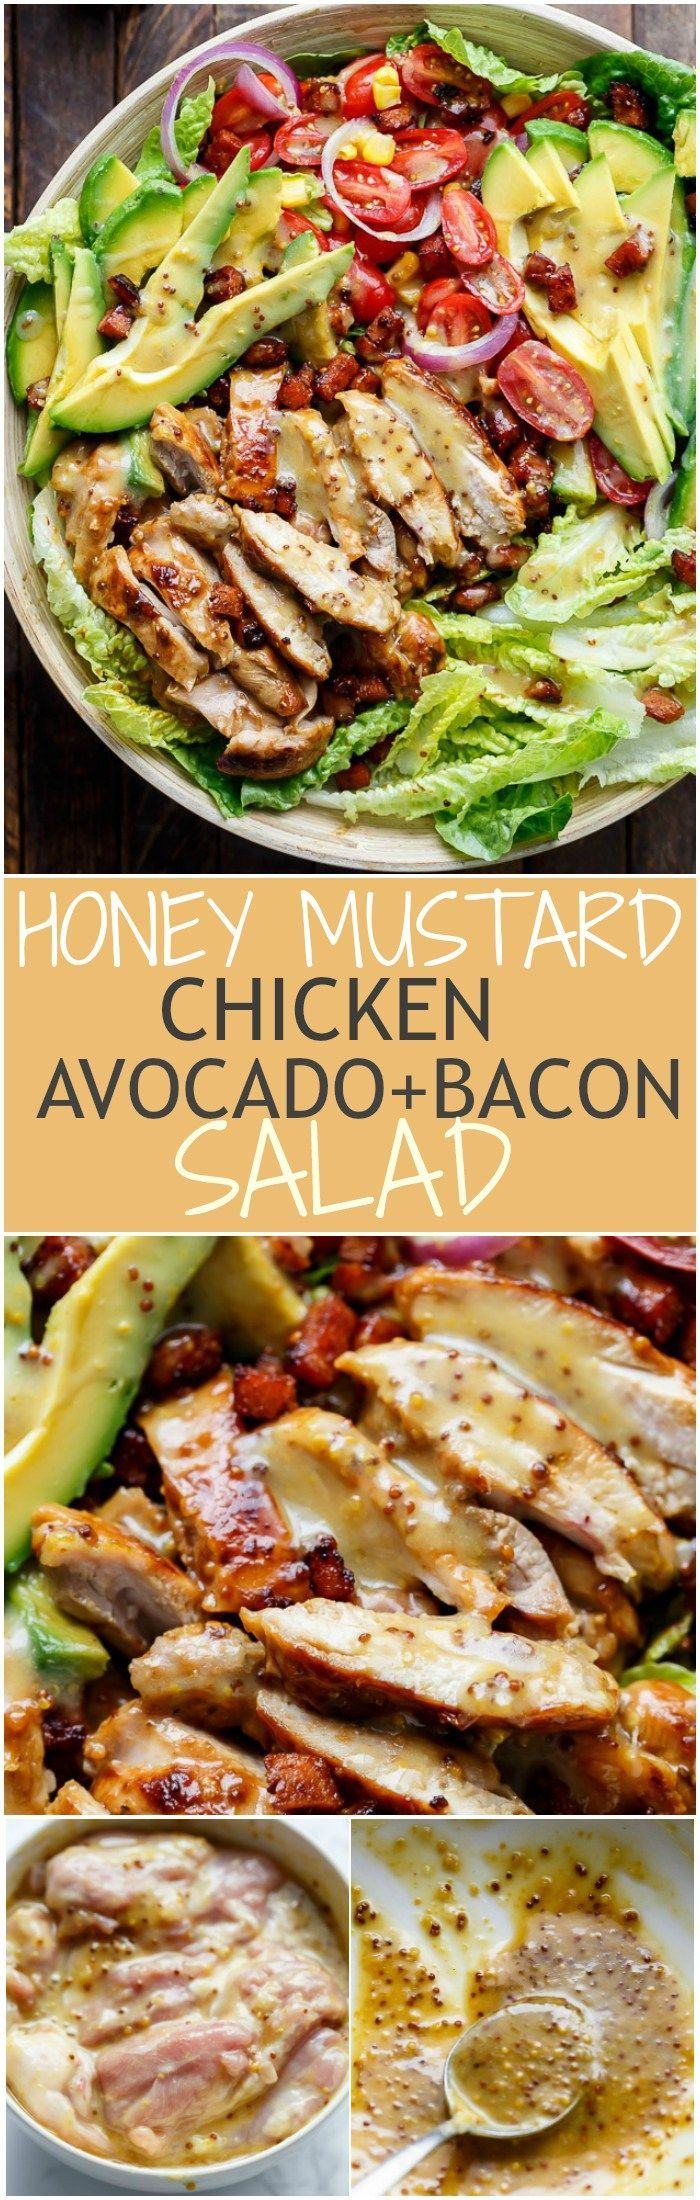 nice Honey Mustard Chicken, Avocado + Bacon Salad - Cafe Delites